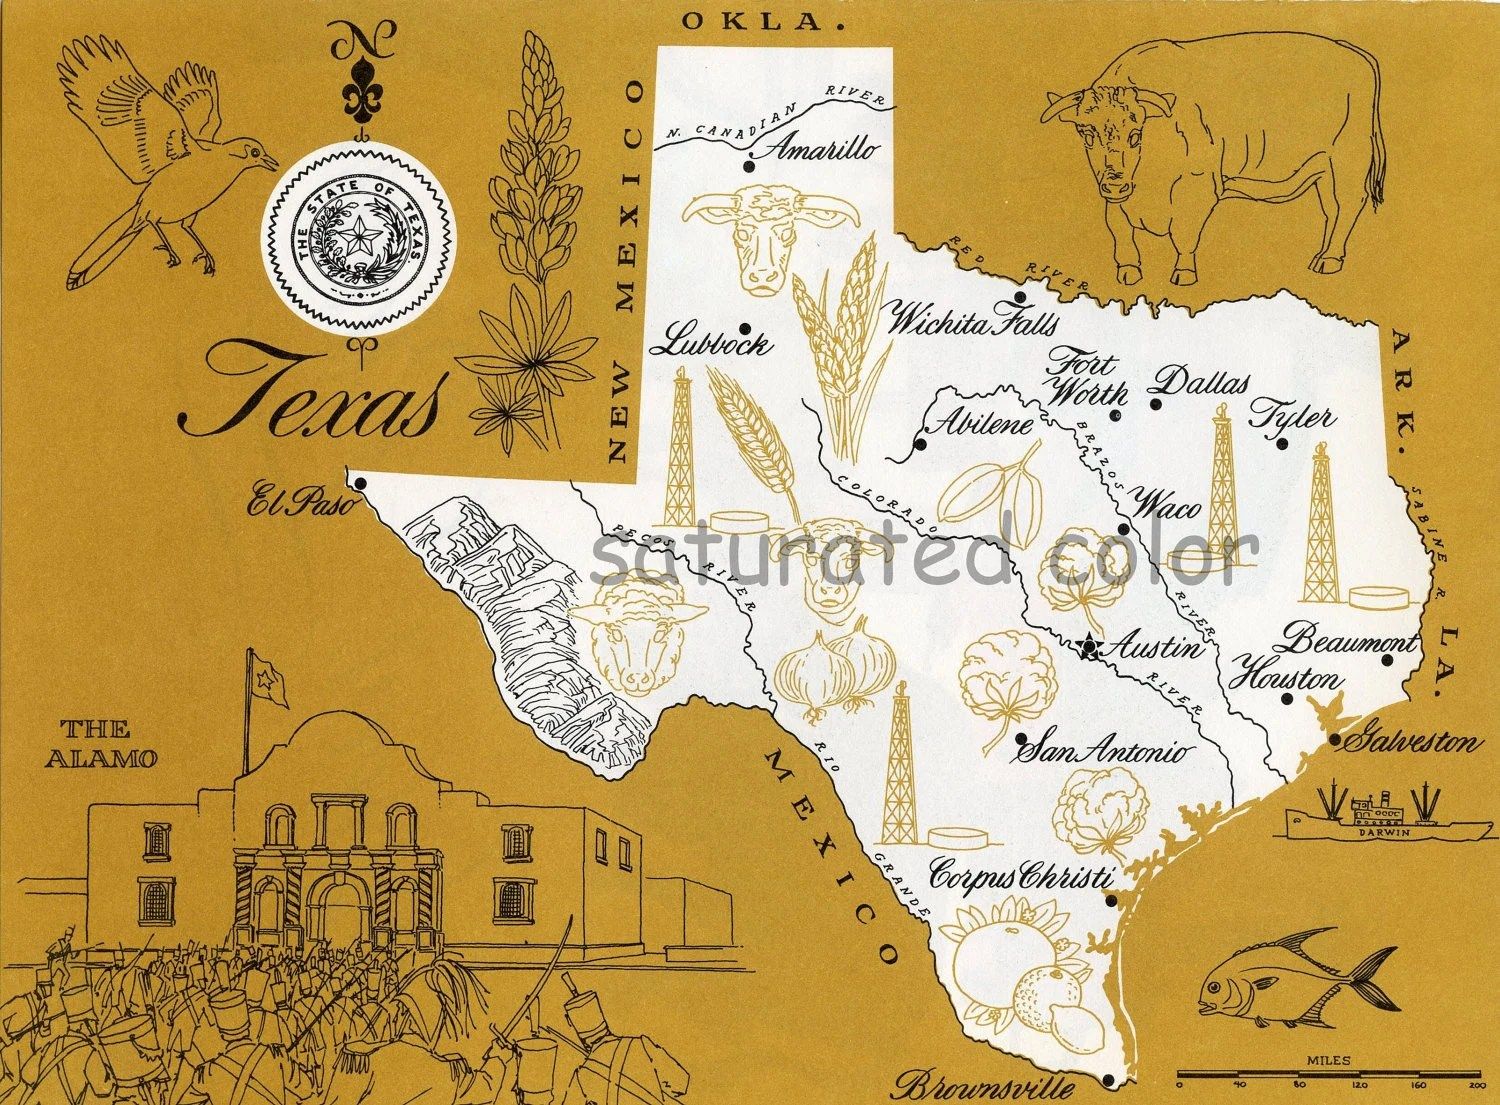 Texas Map - Mustard Yellow Vintage colorful illustrated map of Texas - 1960s picture map - Fun Retro Colors